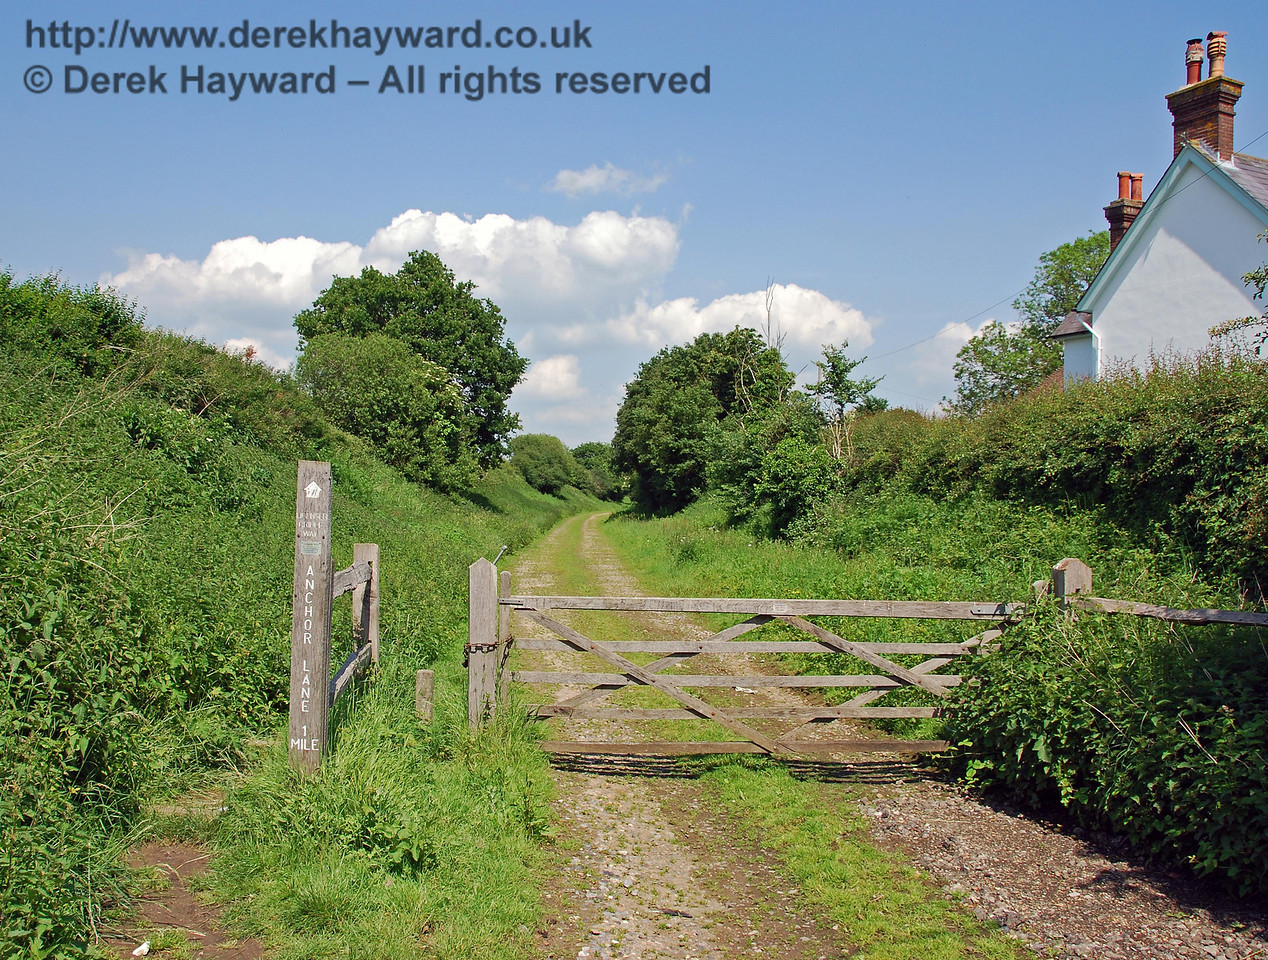 Looking east down the former trackbed, which is now a licensed bridleway to Anchor Lane, a mile to the east.  The track is also used by farmers for access to some adjacent private fields.  02.06.2007